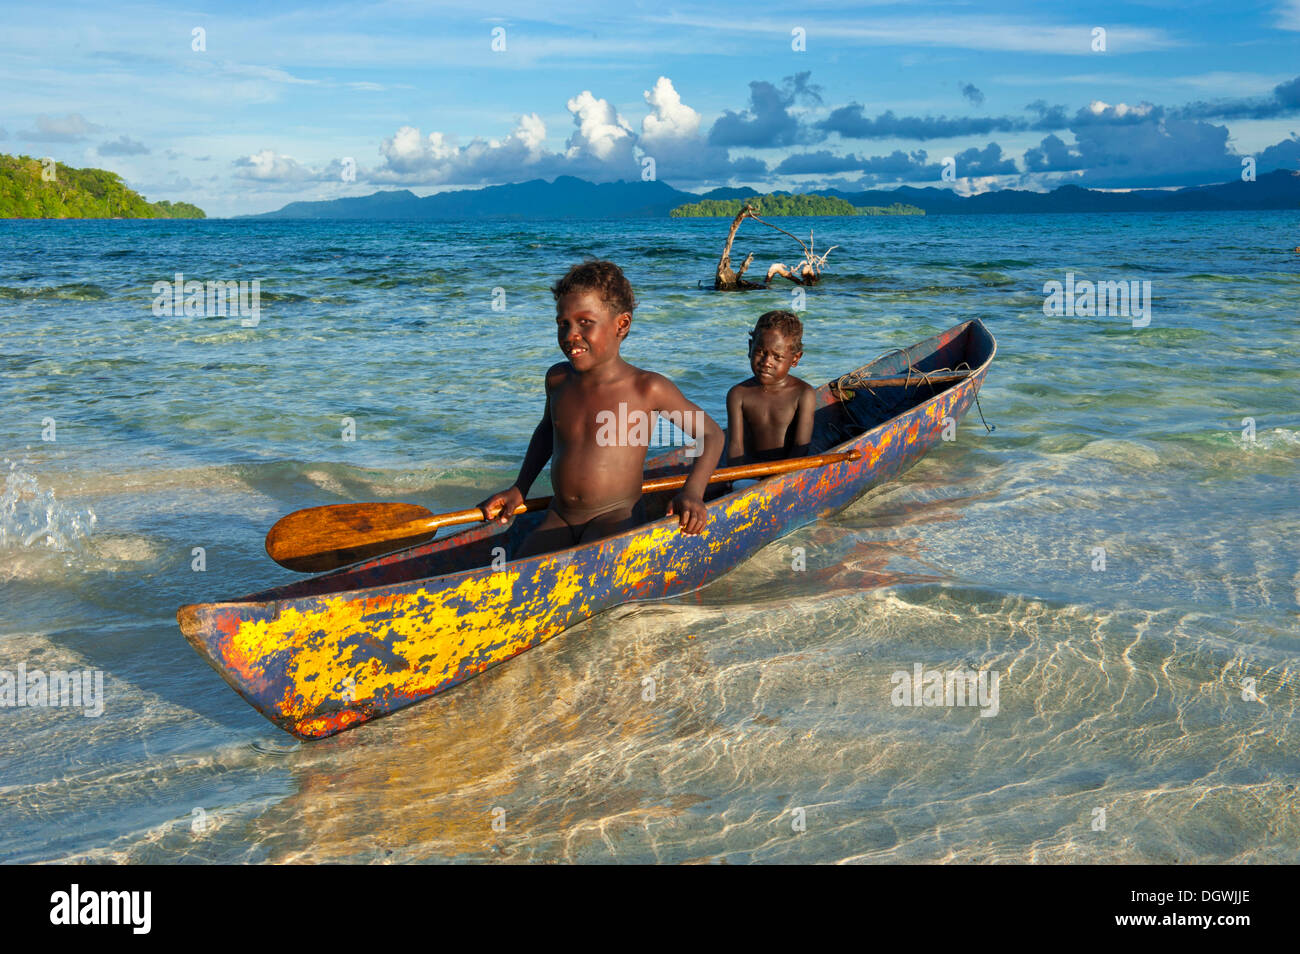 Boys in a canoe in the Marovo Lagoon, Marovo Lagoon, Western Province, Solomon Islands - Stock Image